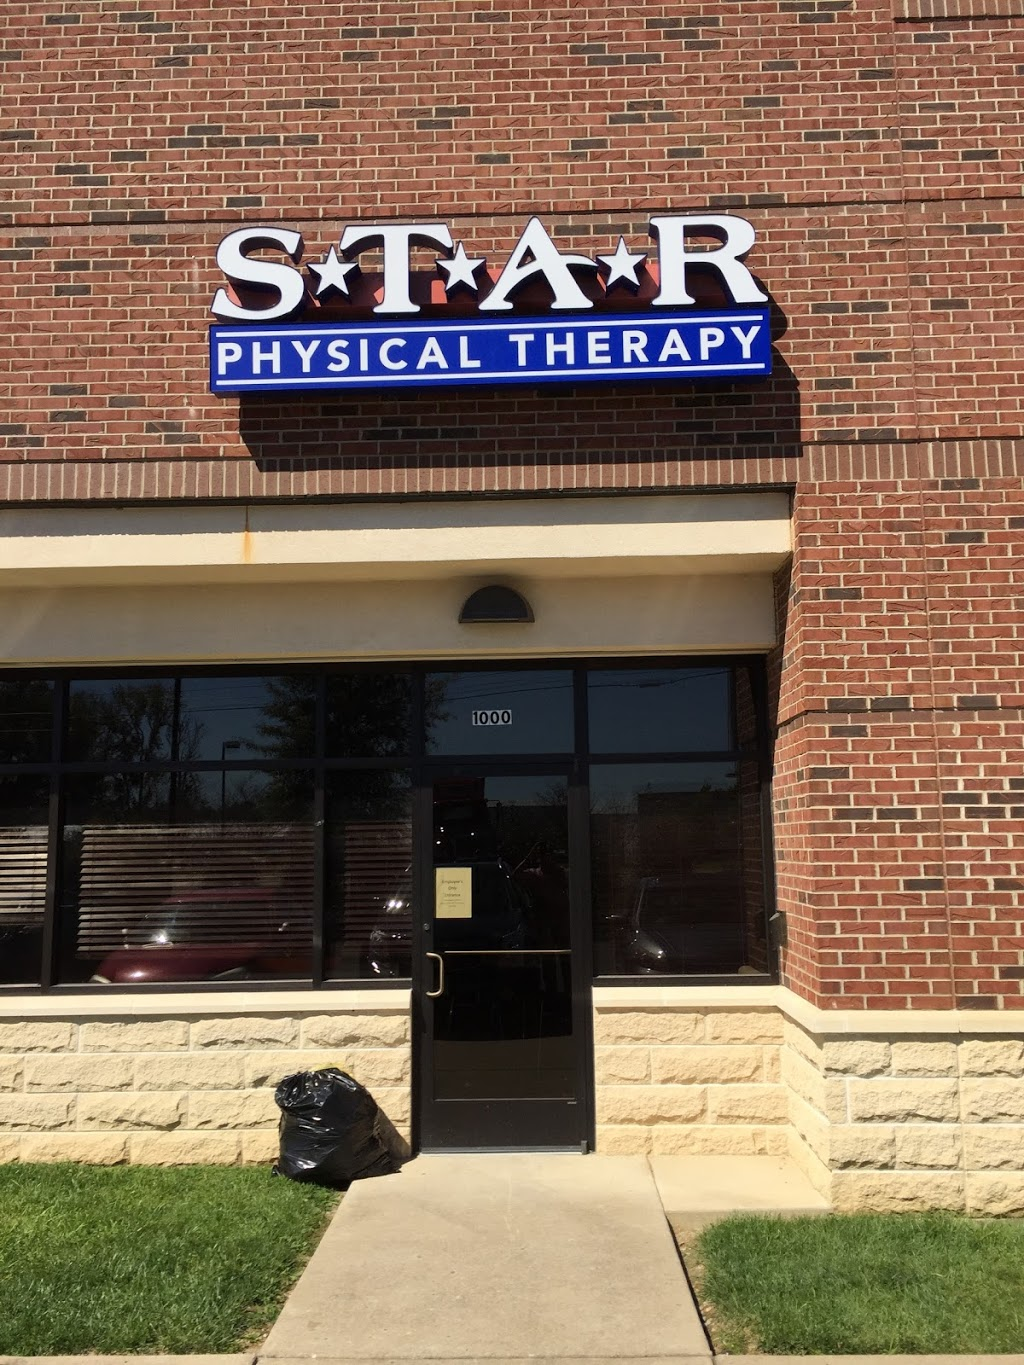 STAR Physical Therapy - physiotherapist  | Photo 2 of 10 | Address: 491 N Sage Rd Suite 1000, White House, TN 37188, USA | Phone: (615) 672-8230